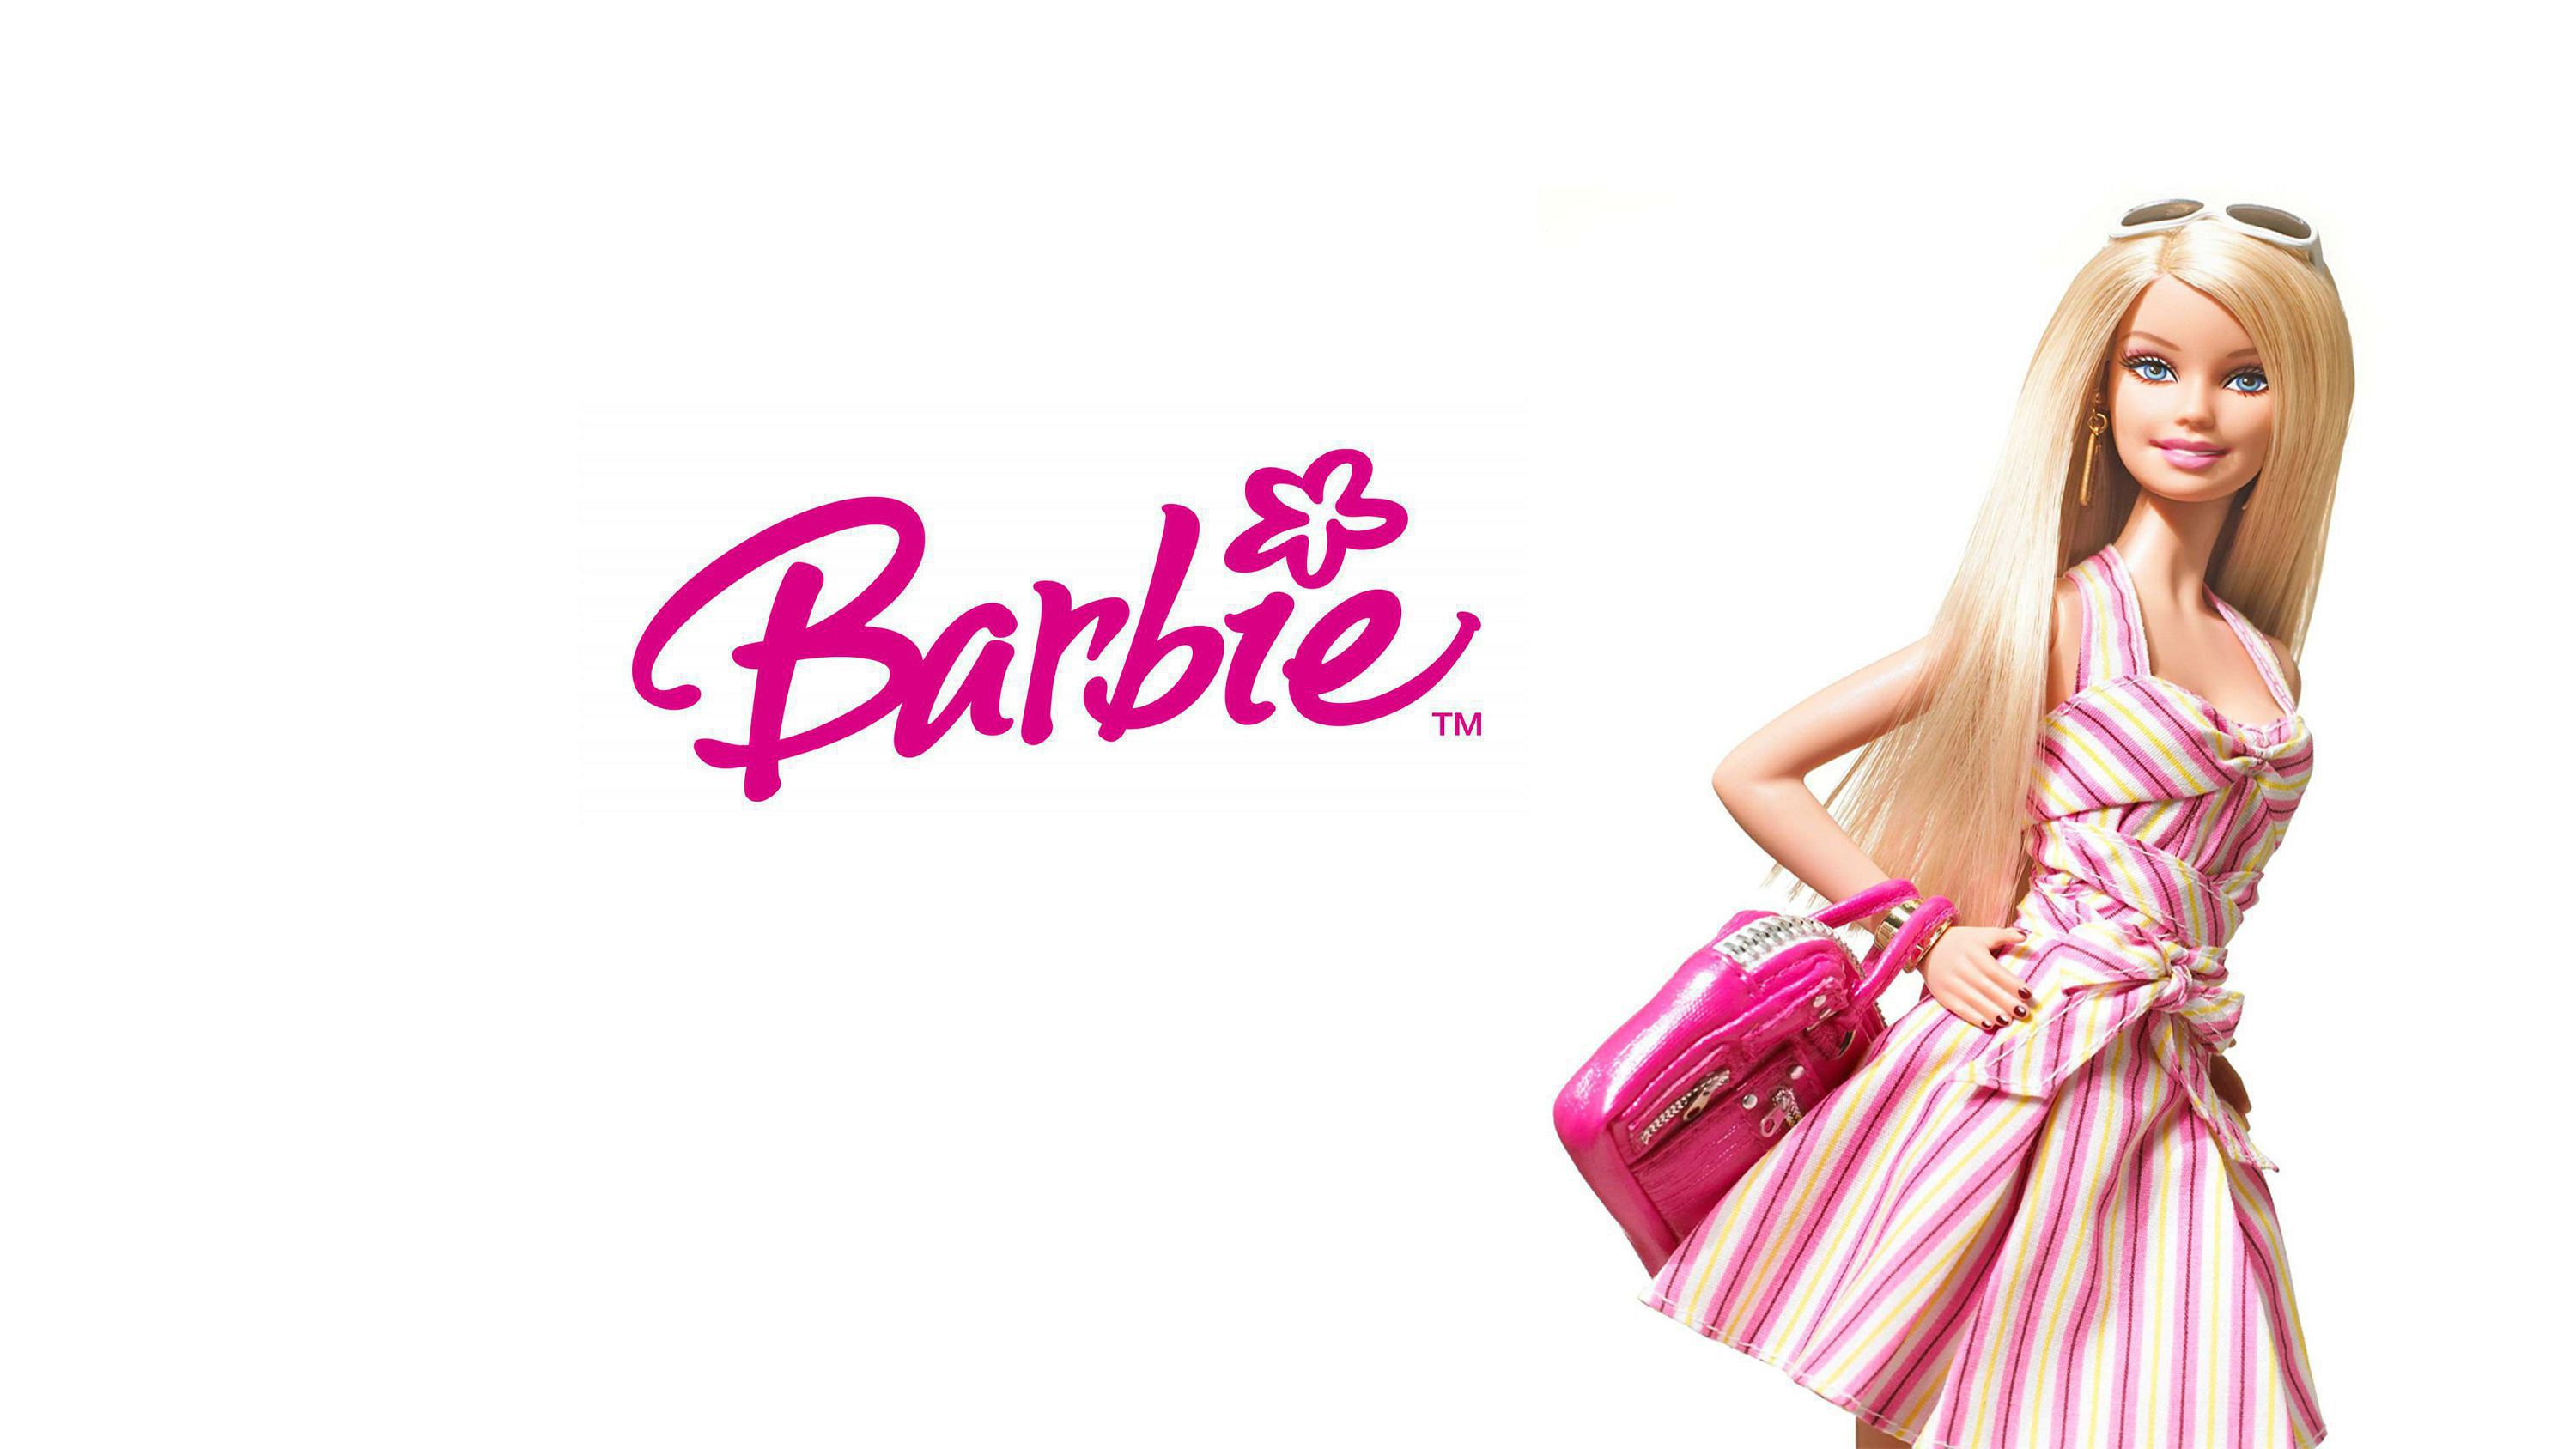 Barbie High Quality Wallpapers